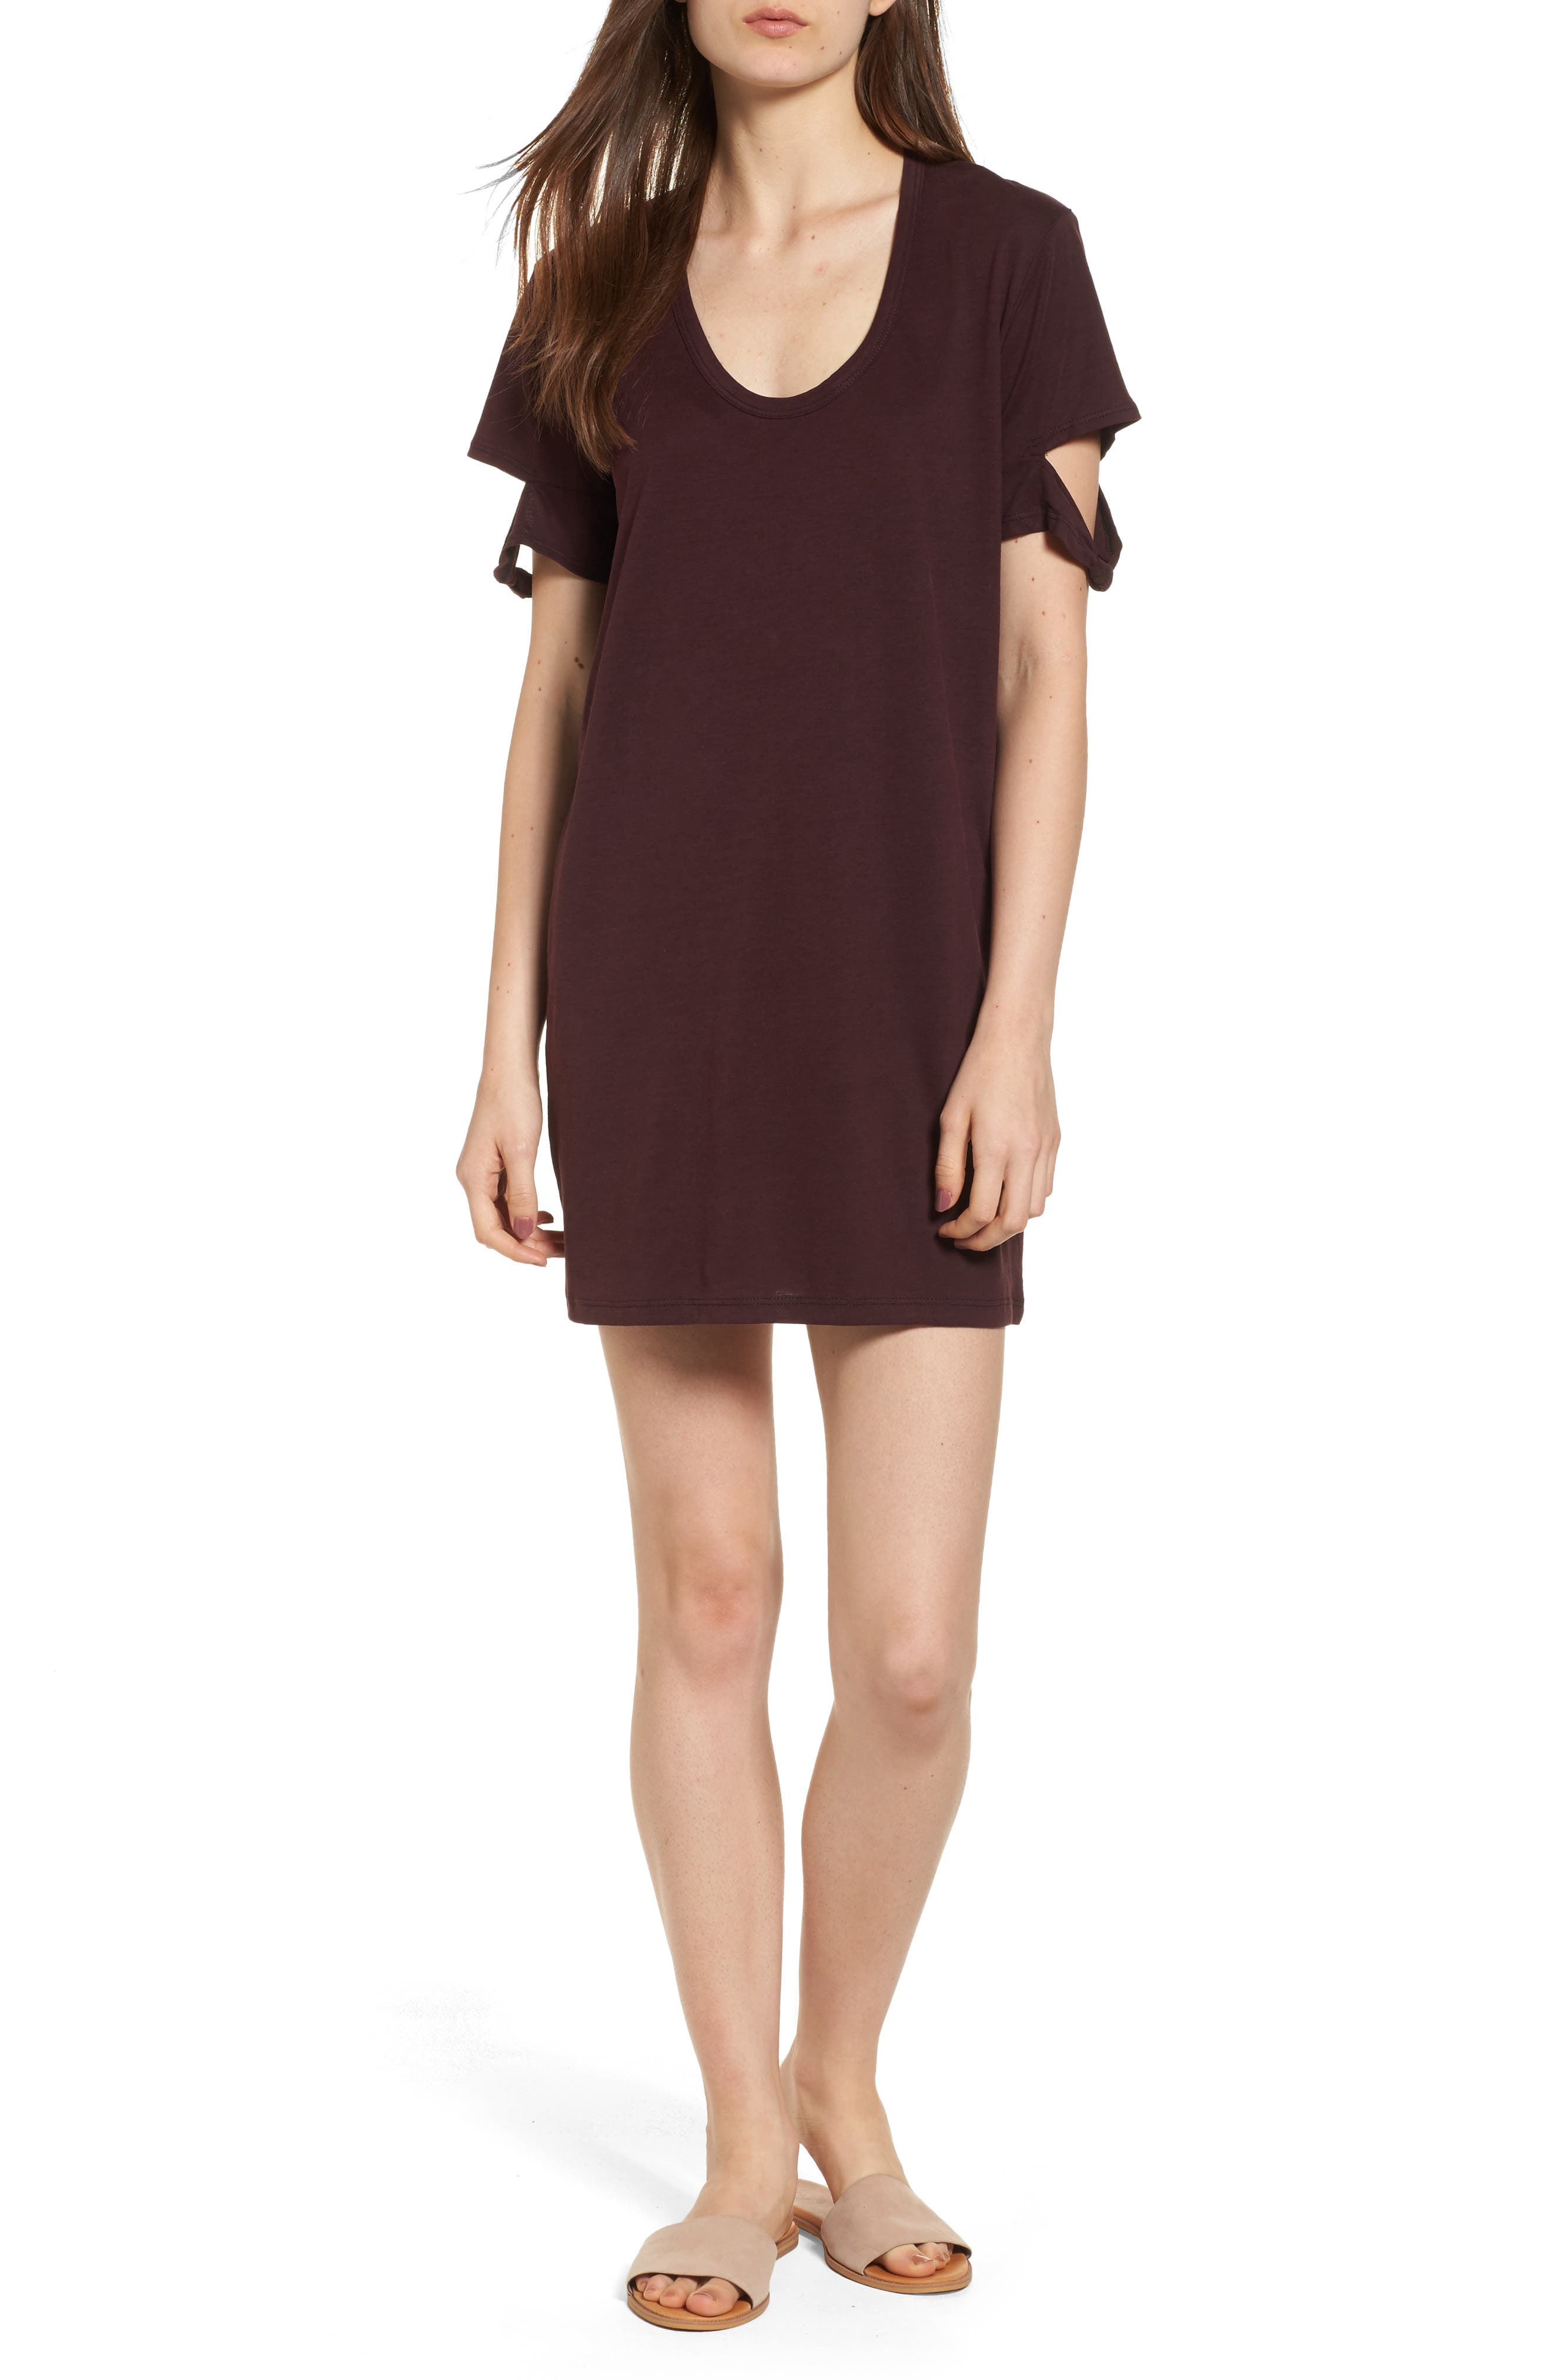 PST by Project Social T Knotted Sleeve T-Shirt Dress